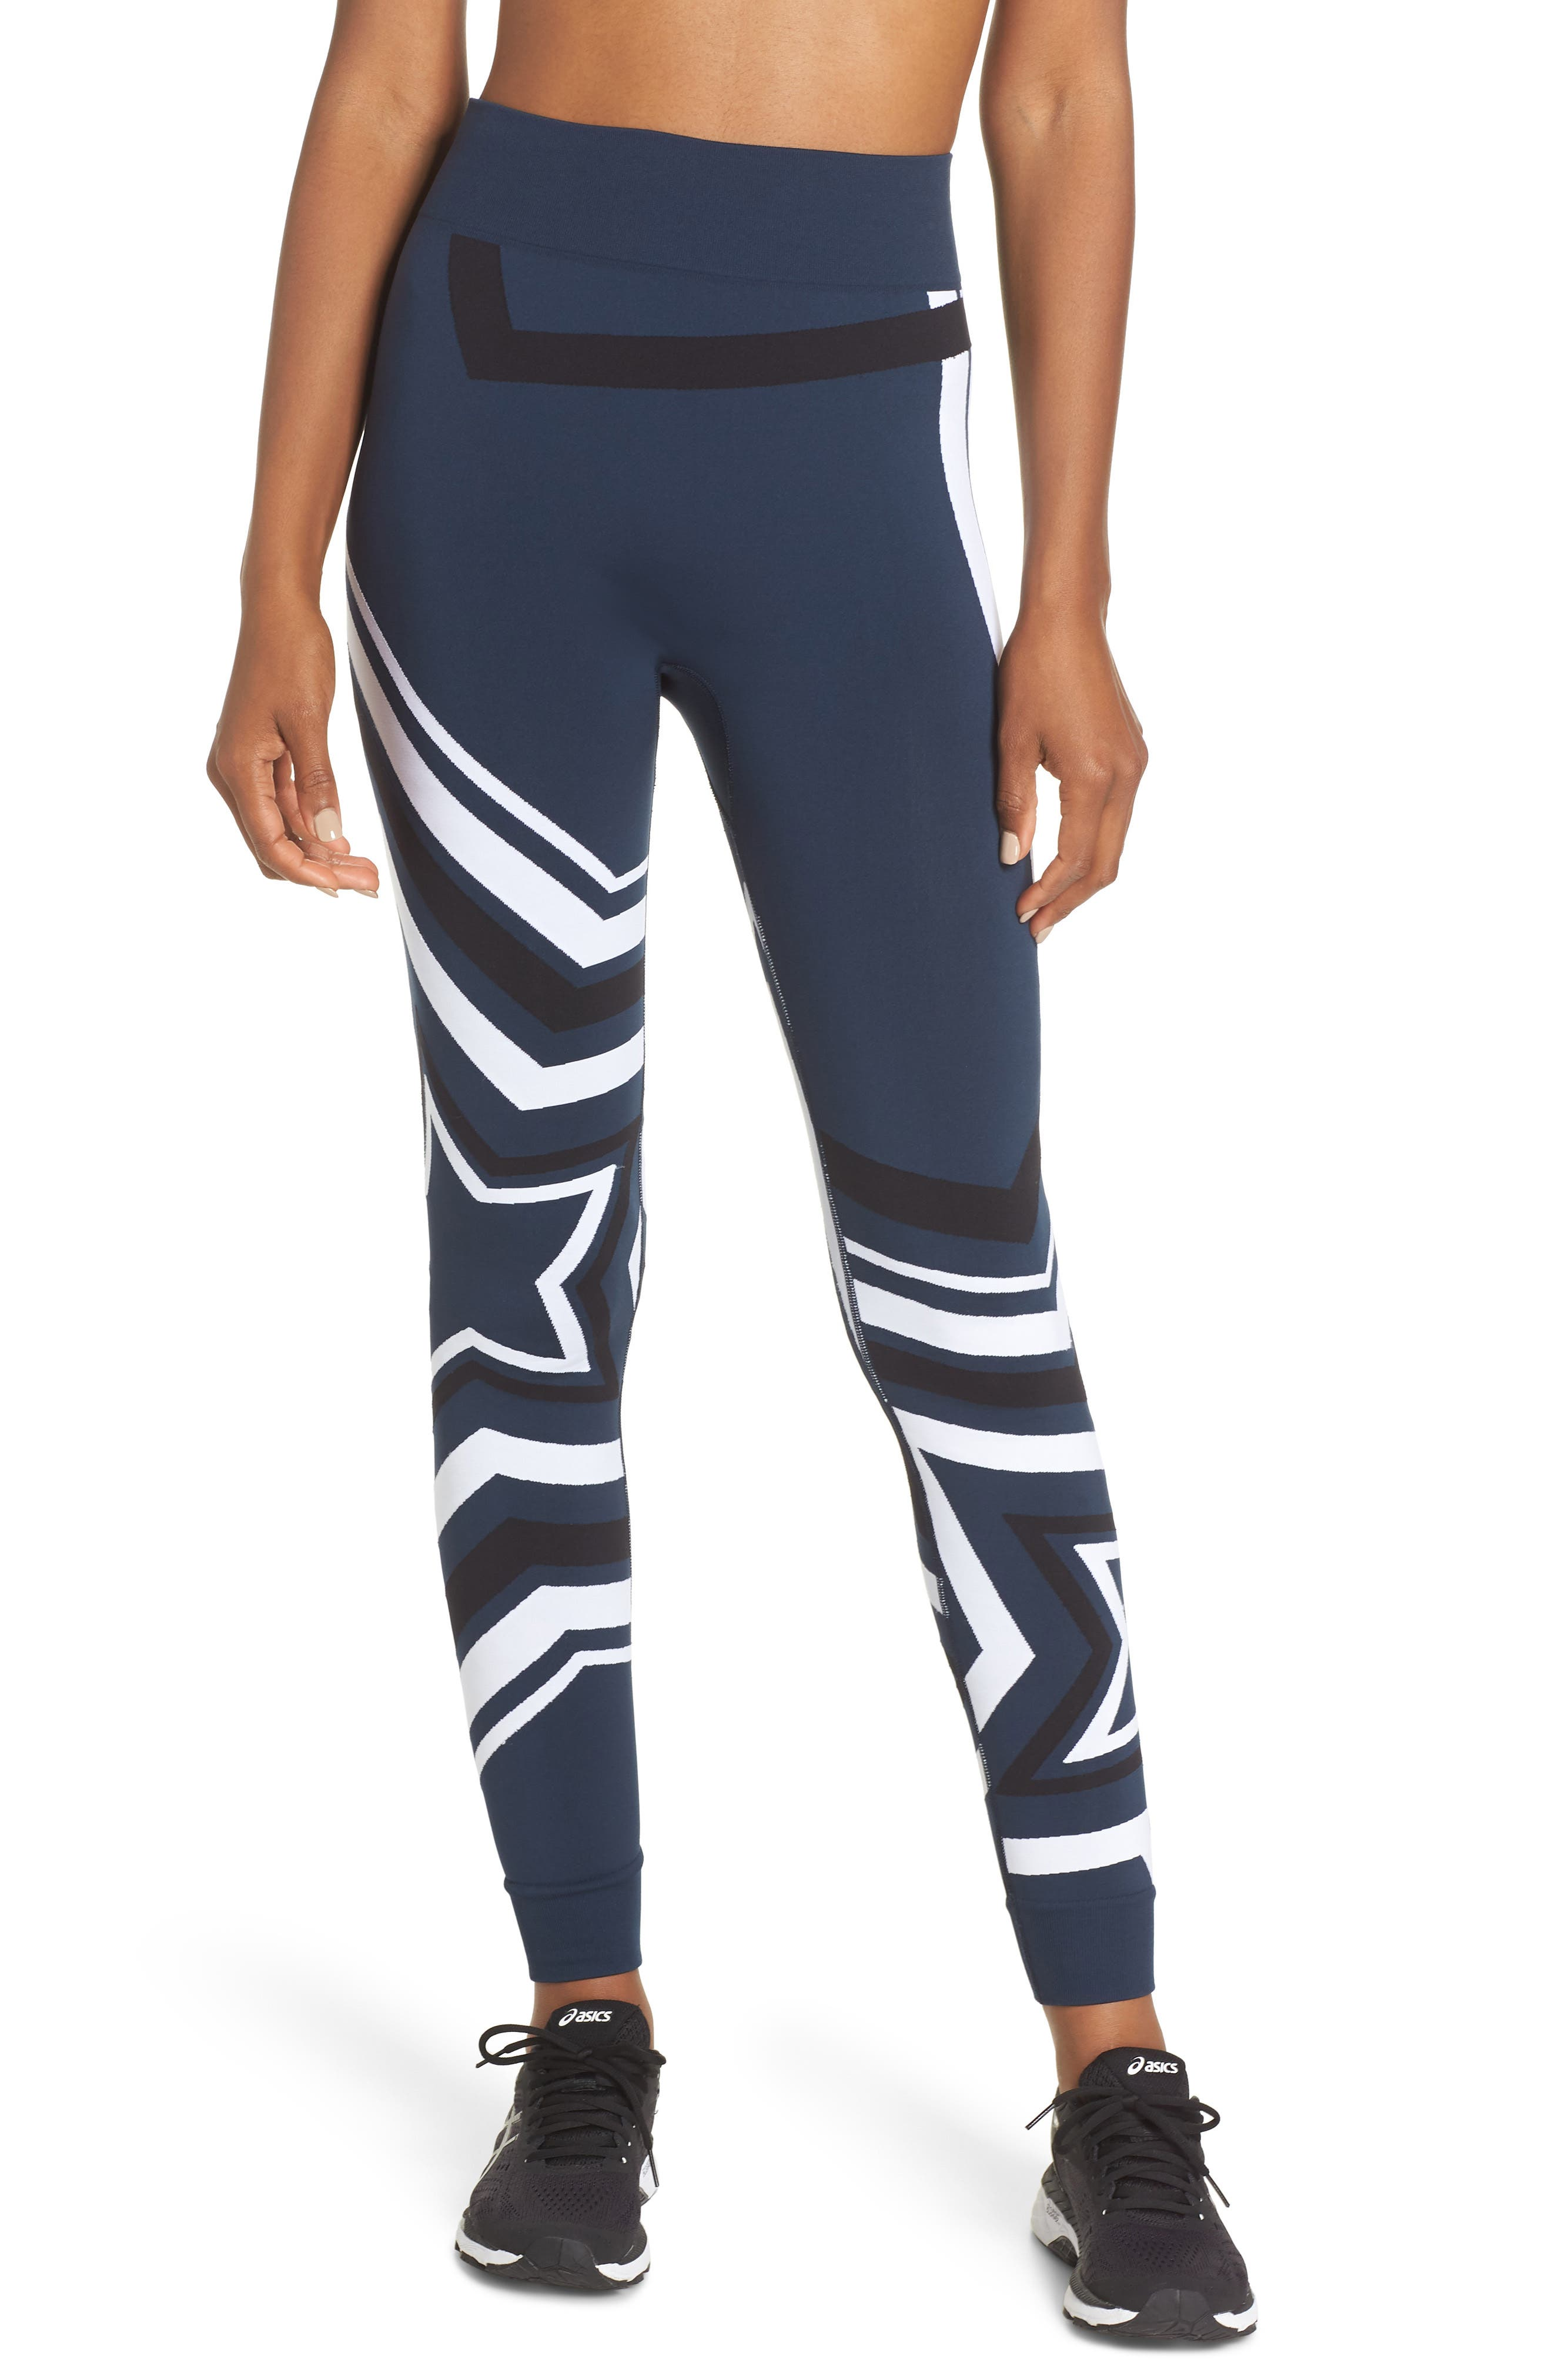 Star Graphic Seamless Leggings,                         Main,                         color, BEETLE BLUE STAR JACQUARD